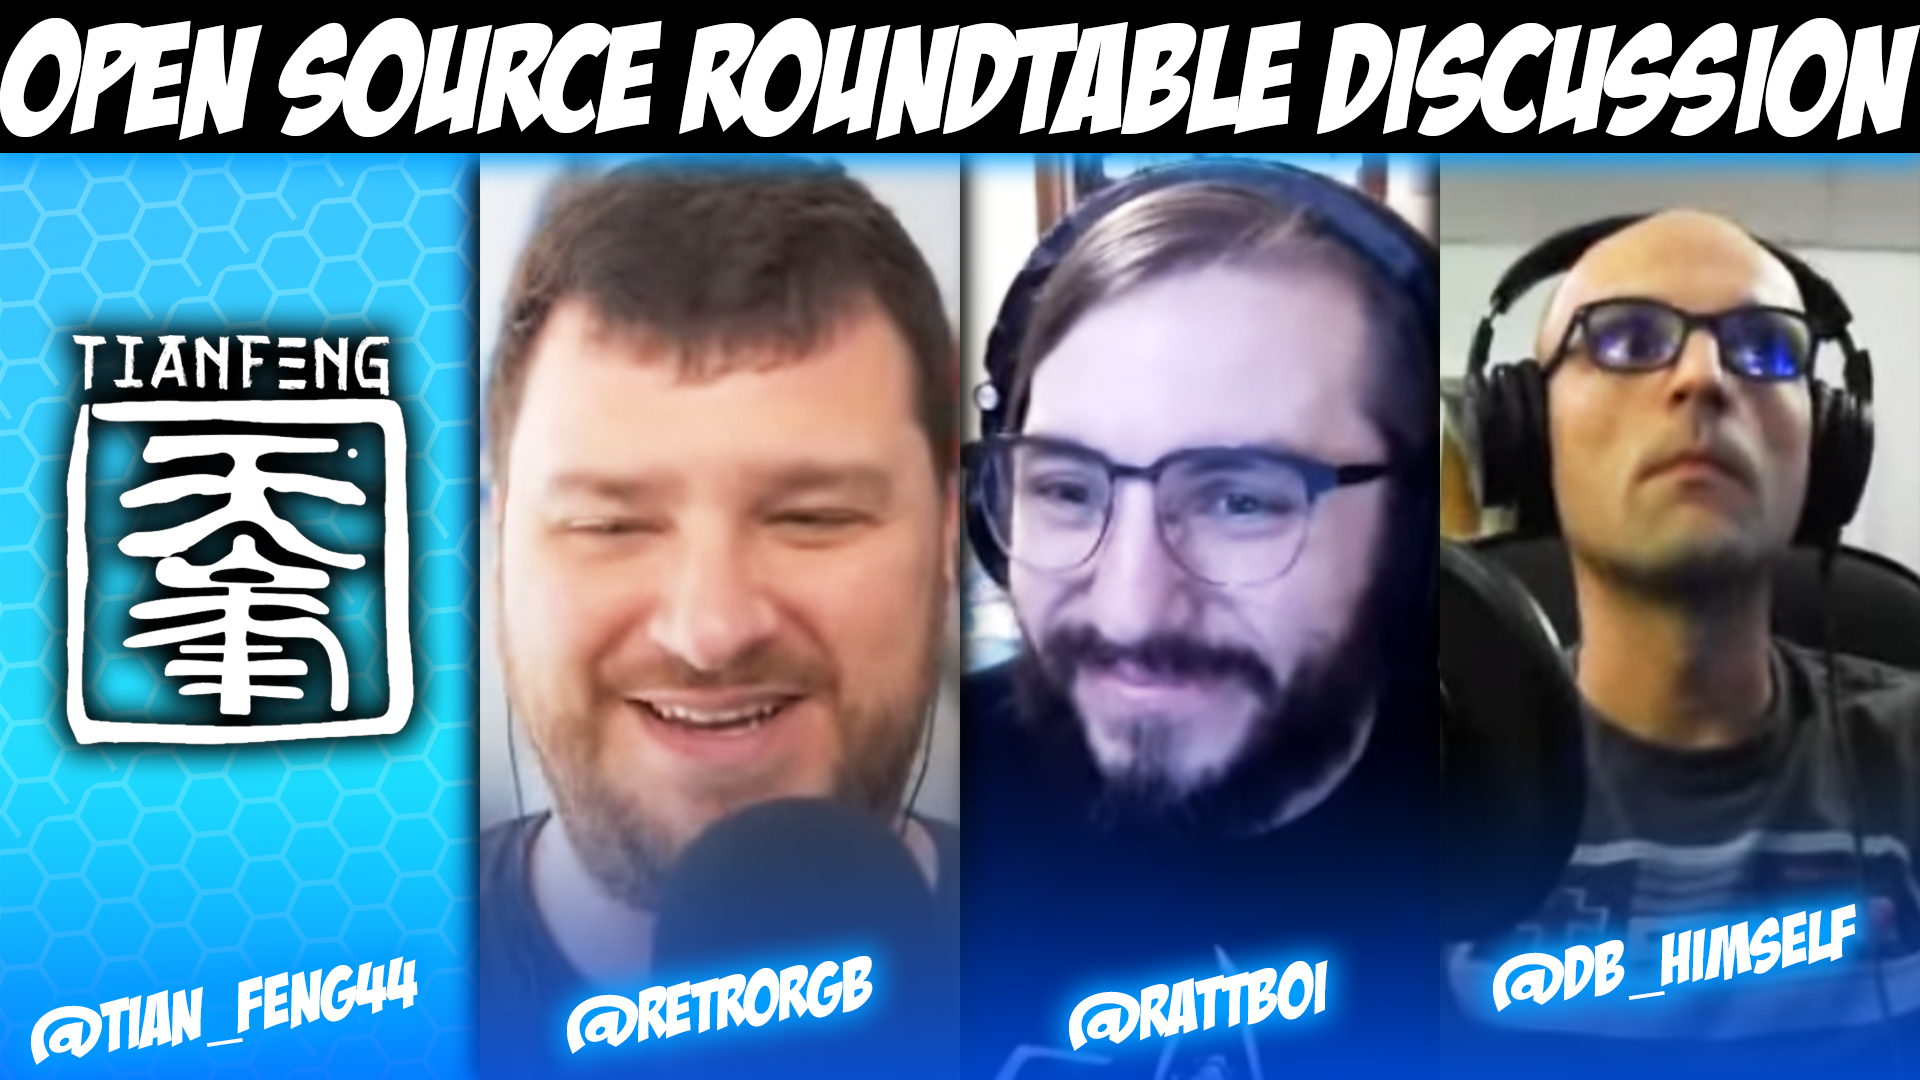 Open Source Roundtable Discussion